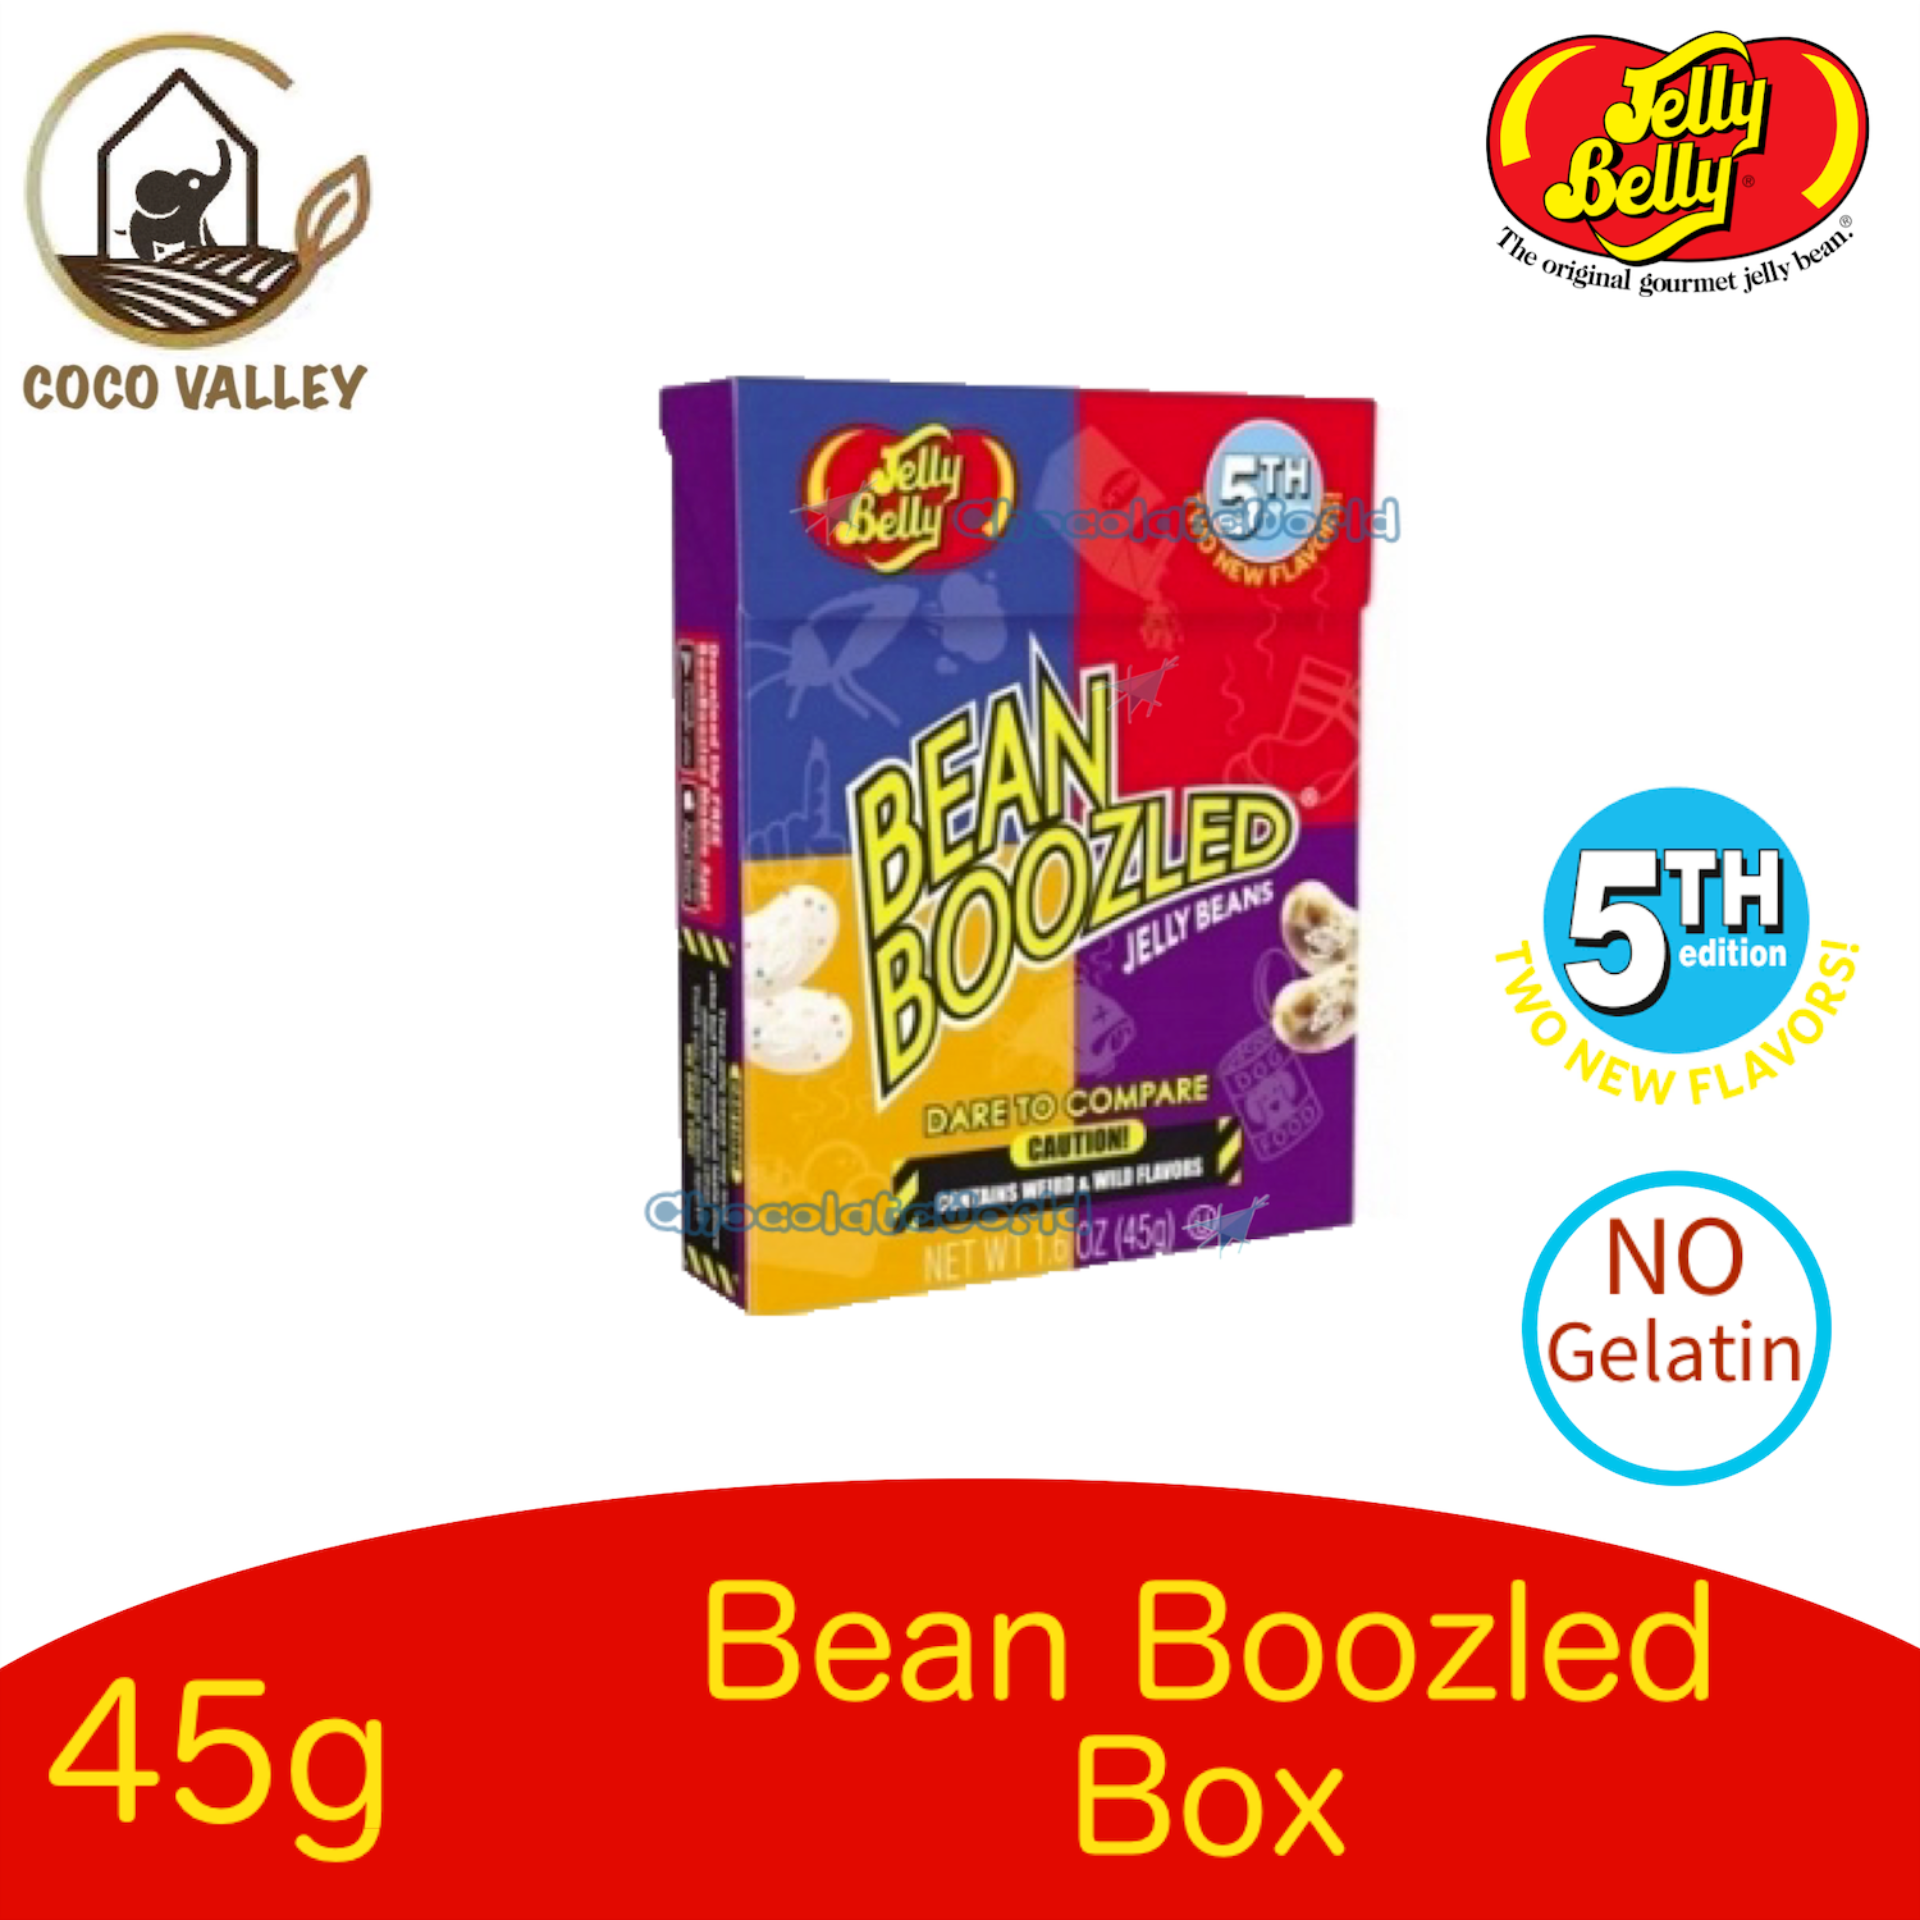 Jelly Belly 4th Edition Bean Boozled Jelly Beans 45g Box